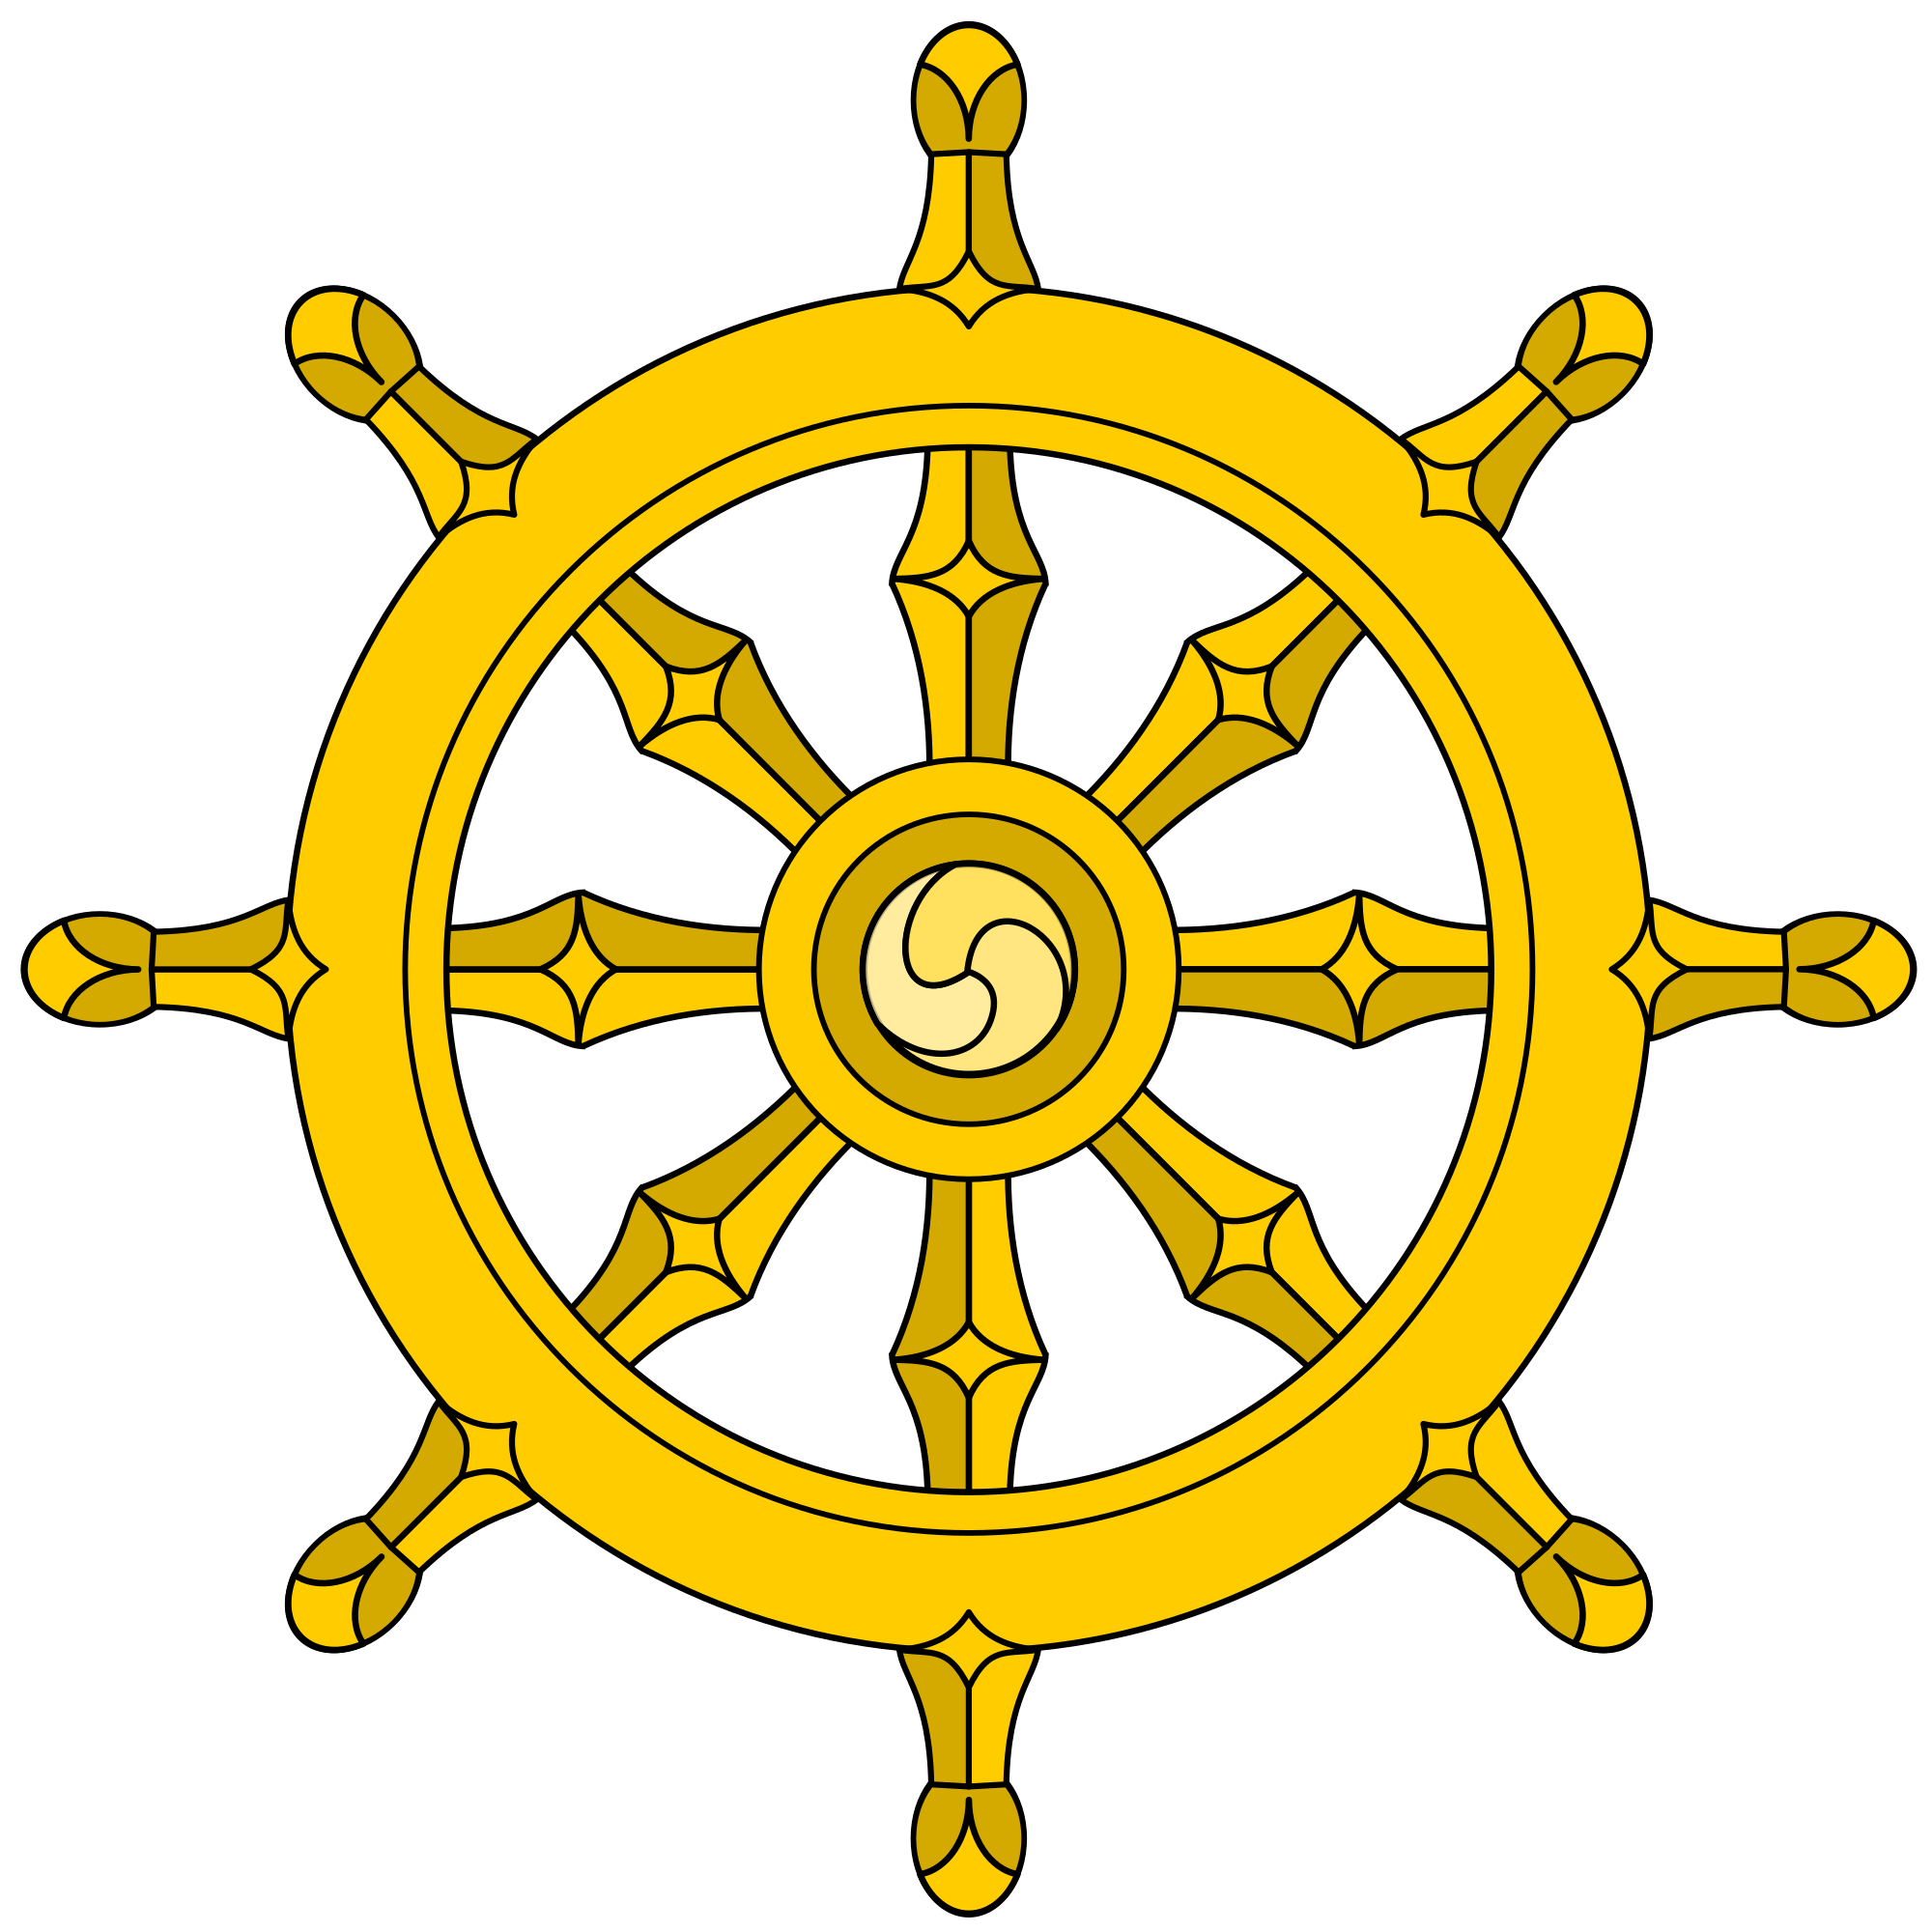 Wheel clipart circle object. Outline of buddhism wikipedia